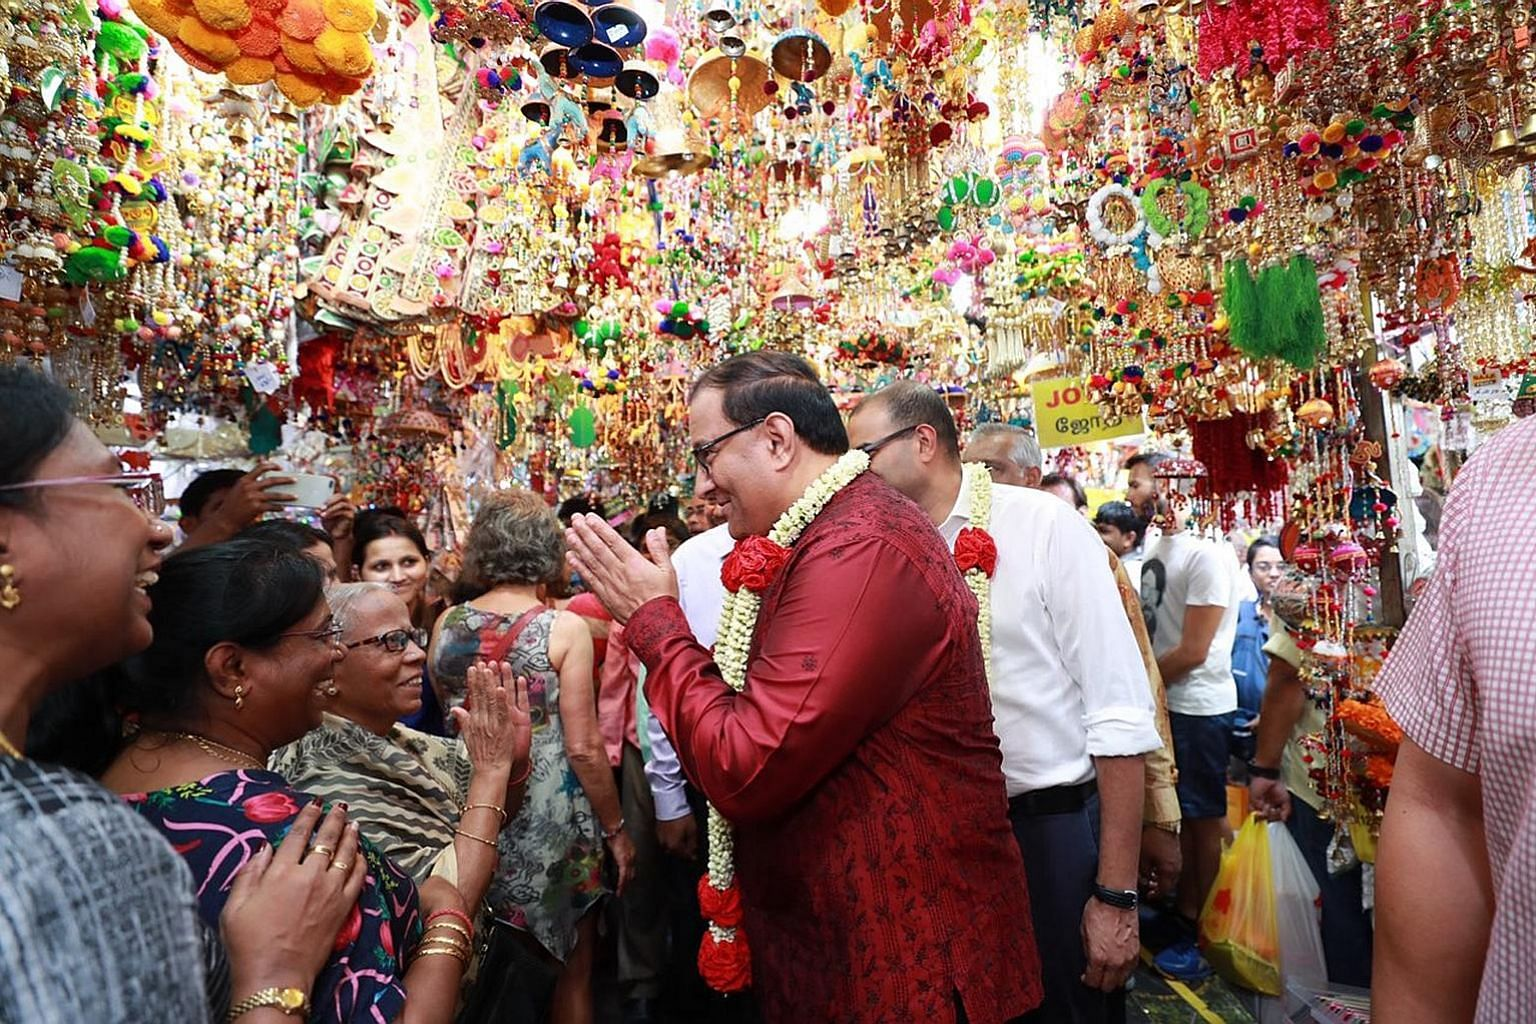 Minister for Communications and Information S. Iswaran paid a visit to the Little India Deepavali bazaar yesterday. While at the bazaar, Mr Iswaran also made donations to the Singapore Indian Development Association's (Sinda) Project Give, Sinda's fl